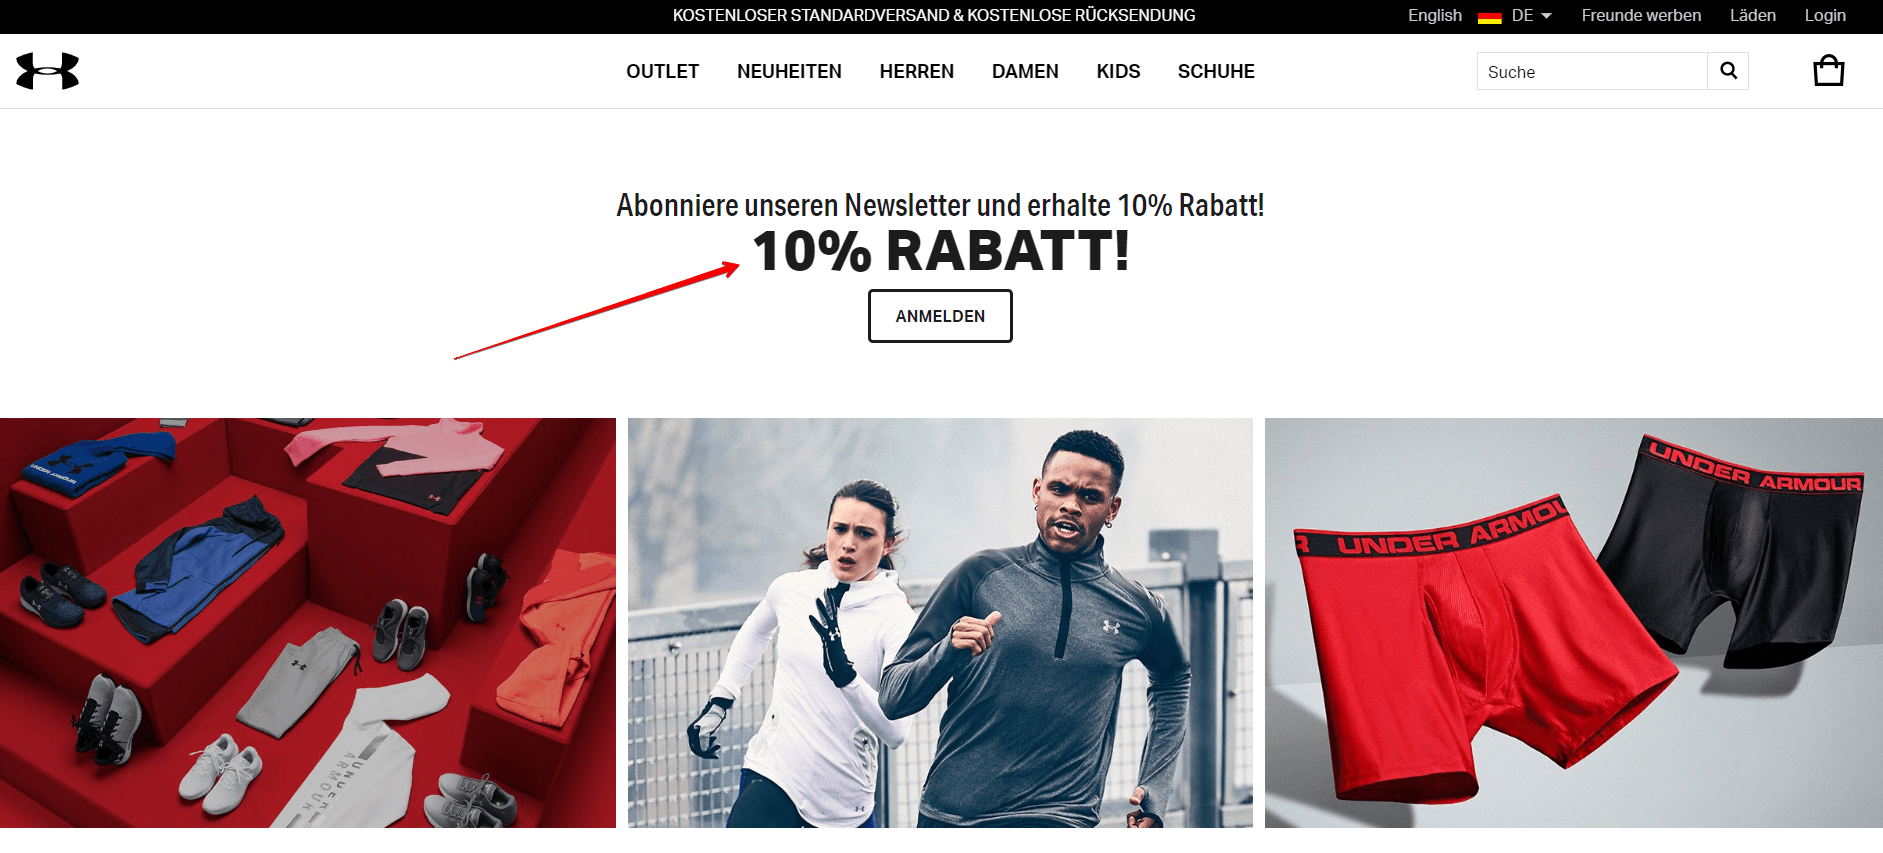 Email marketing von under armour deutschland